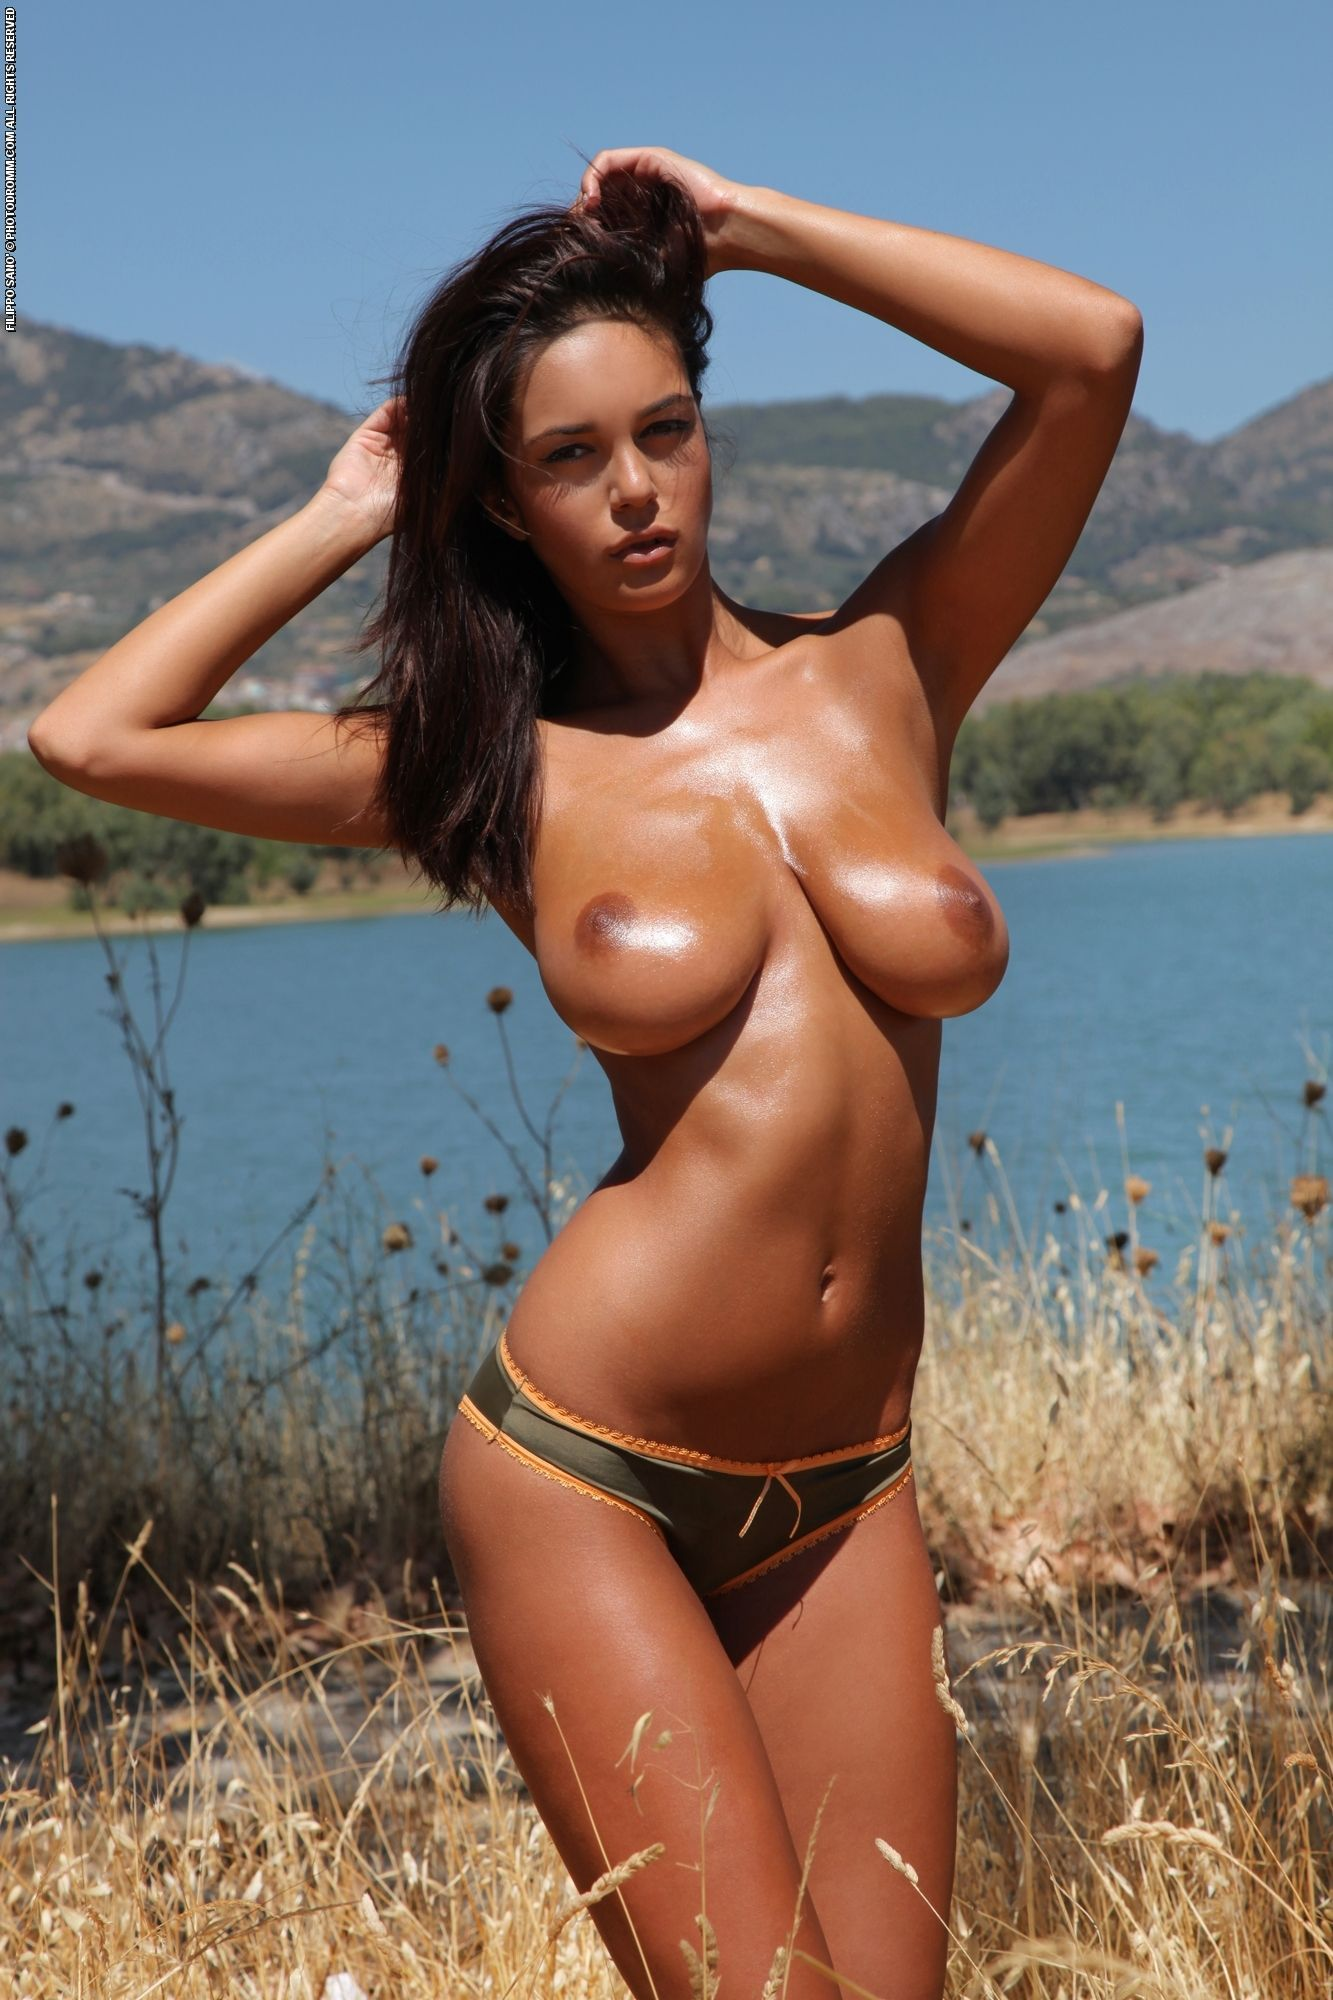 image result for stunning boobs | awesome | pinterest | boobs